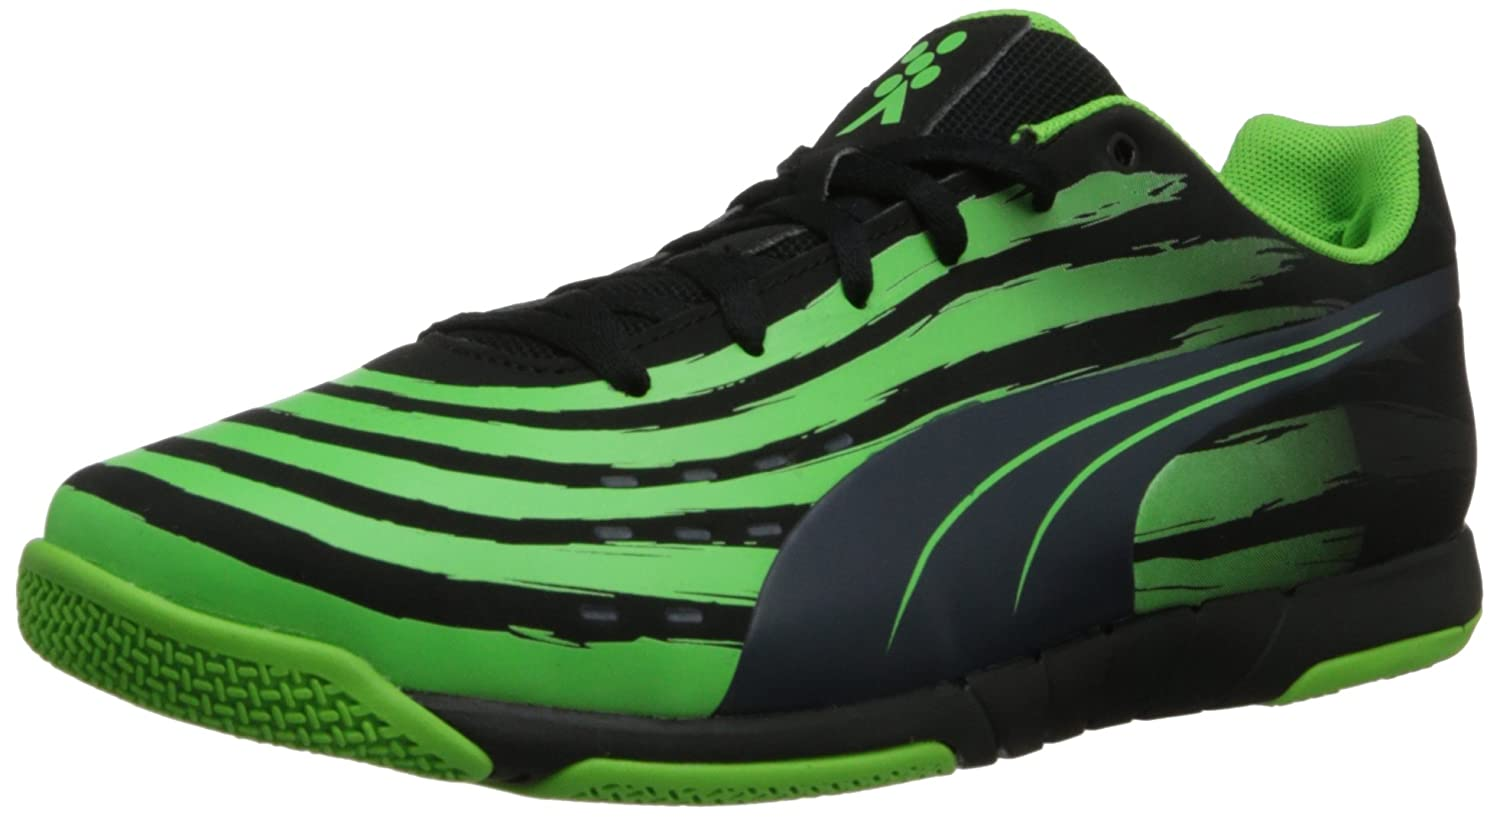 PUMA メンズ B00DOL38II 11.5 mens_us|Black/Ombre Blue/Fluorescent Green Black/Ombre Blue/Fluorescent Green 11.5 mens_us